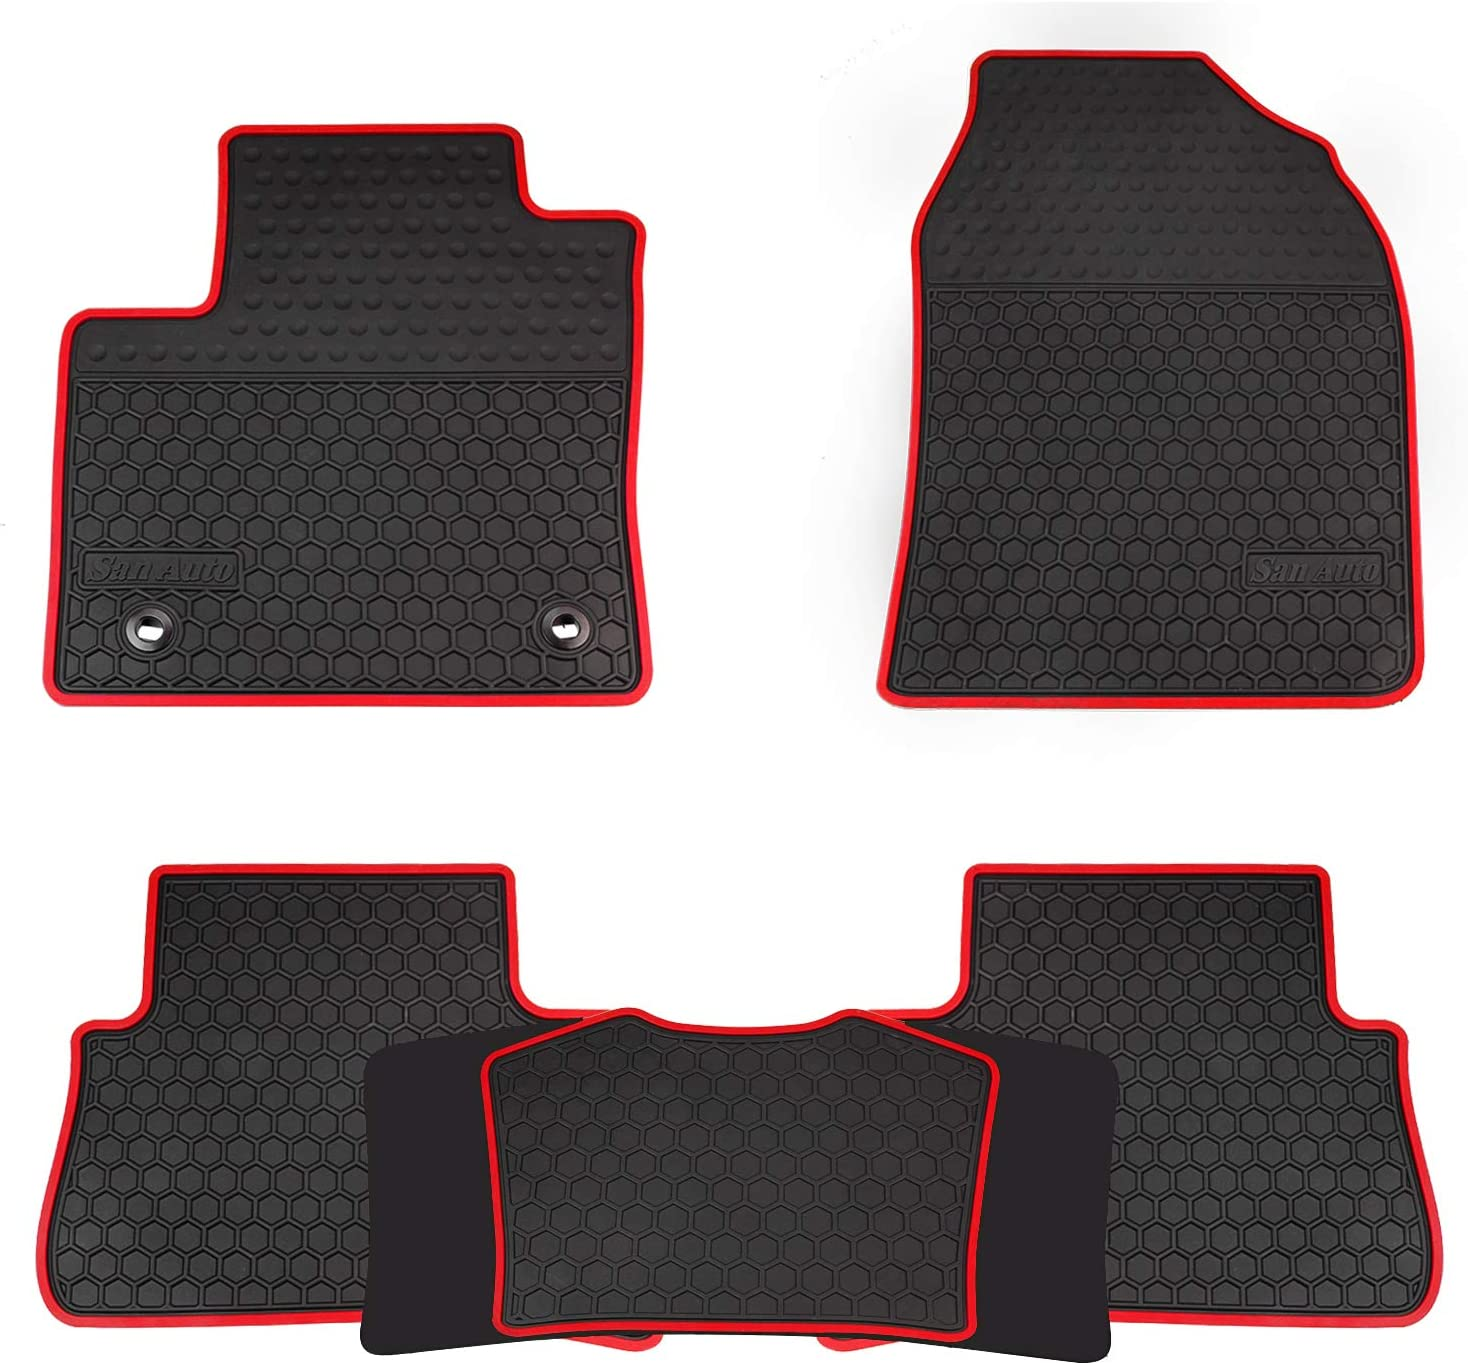 San Auto Car Floor Mats Custom Fit for Toyota C-HR 2017 2018 2019 2020 Full Black Rubber Car Floor Liners Set All Weather Protection Heavy Duty Odorless